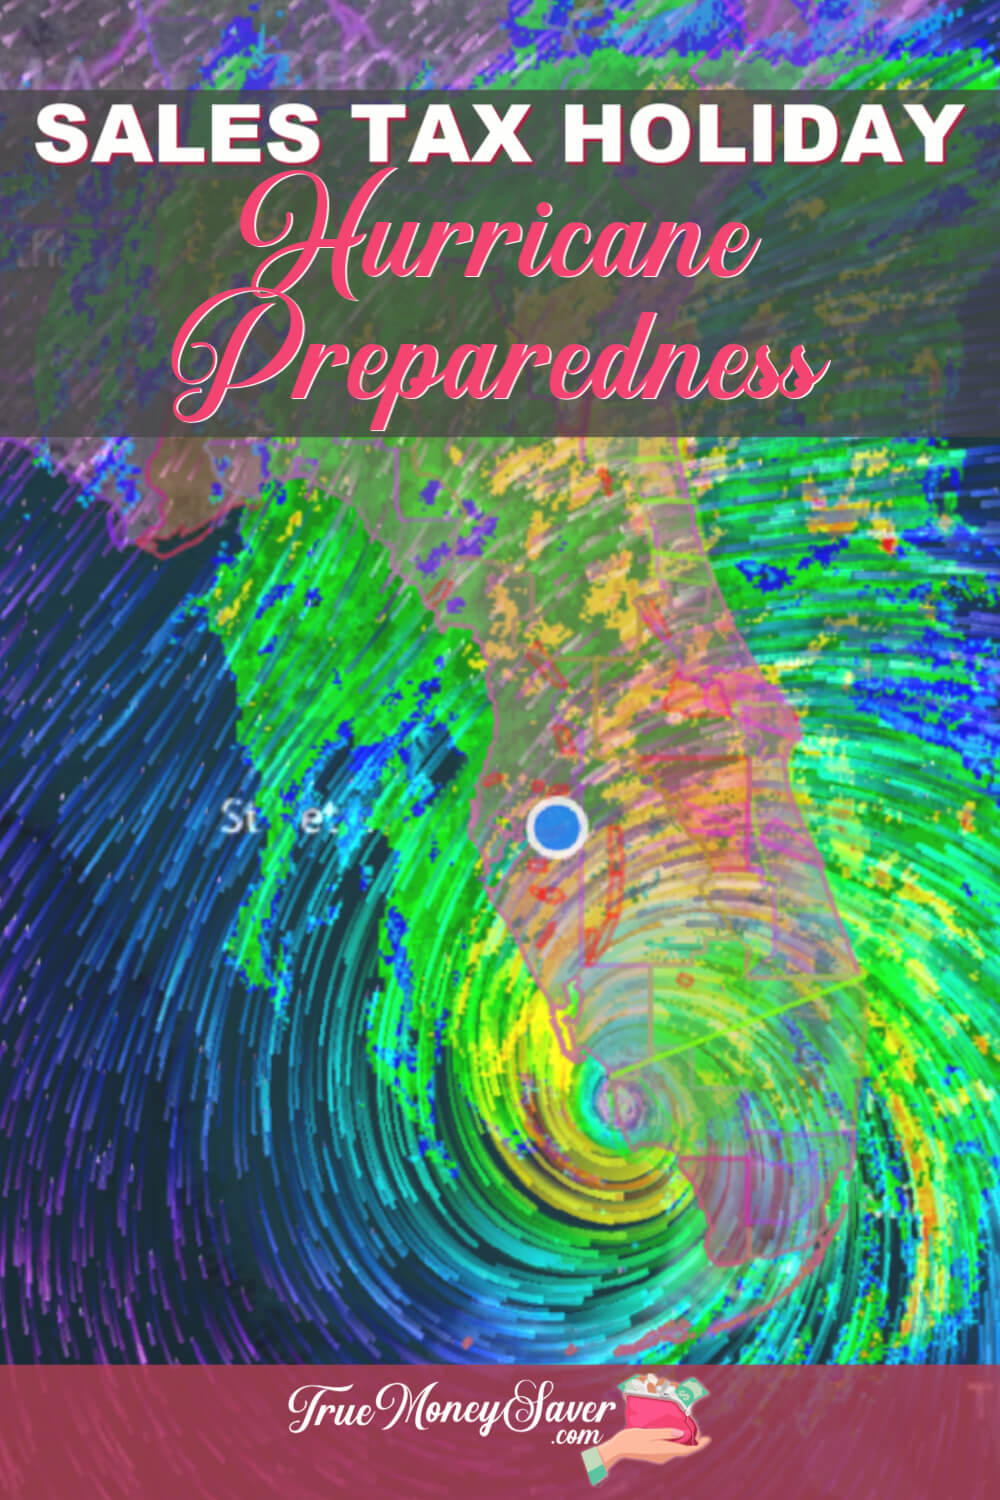 Are you ready for the Hurricane Sales Tax Holiday? Get ready to buy these hurricane preparedness kit emergency supplies with no tax! Plus you can grab camping and beach items with the no tax hurricane preparedness items!